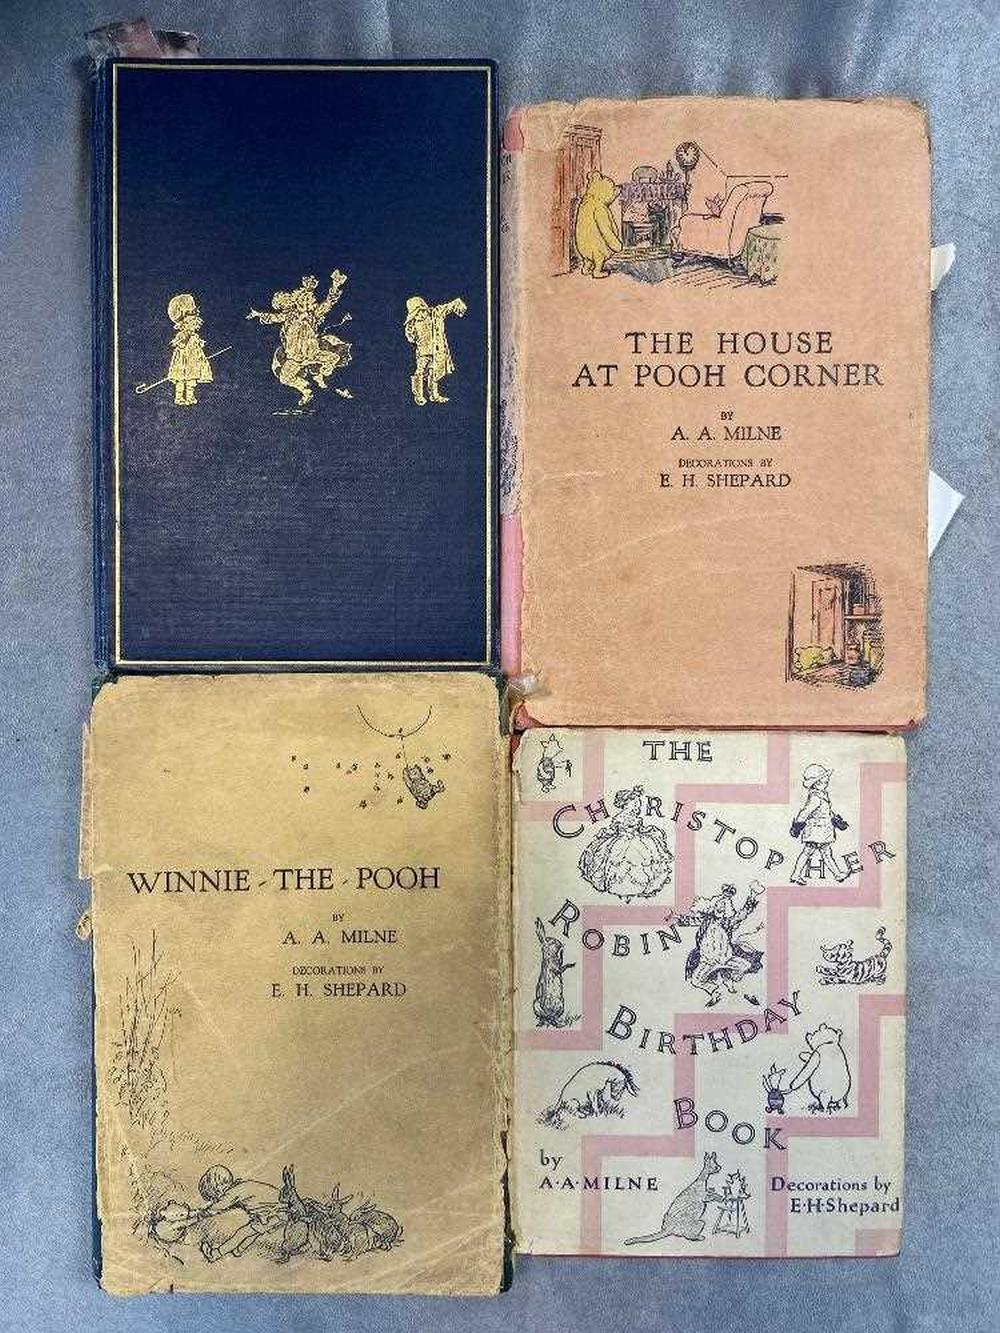 Milne (A A) Winnie-The-Pooh, 1st edition 1926, contemporary gift inscription, dust jacket damaged and incomplete; The House at Pooh Corner, 1st edition, 1928, dust jacket damaged and incomplete with added colour to front illustrations; When We...